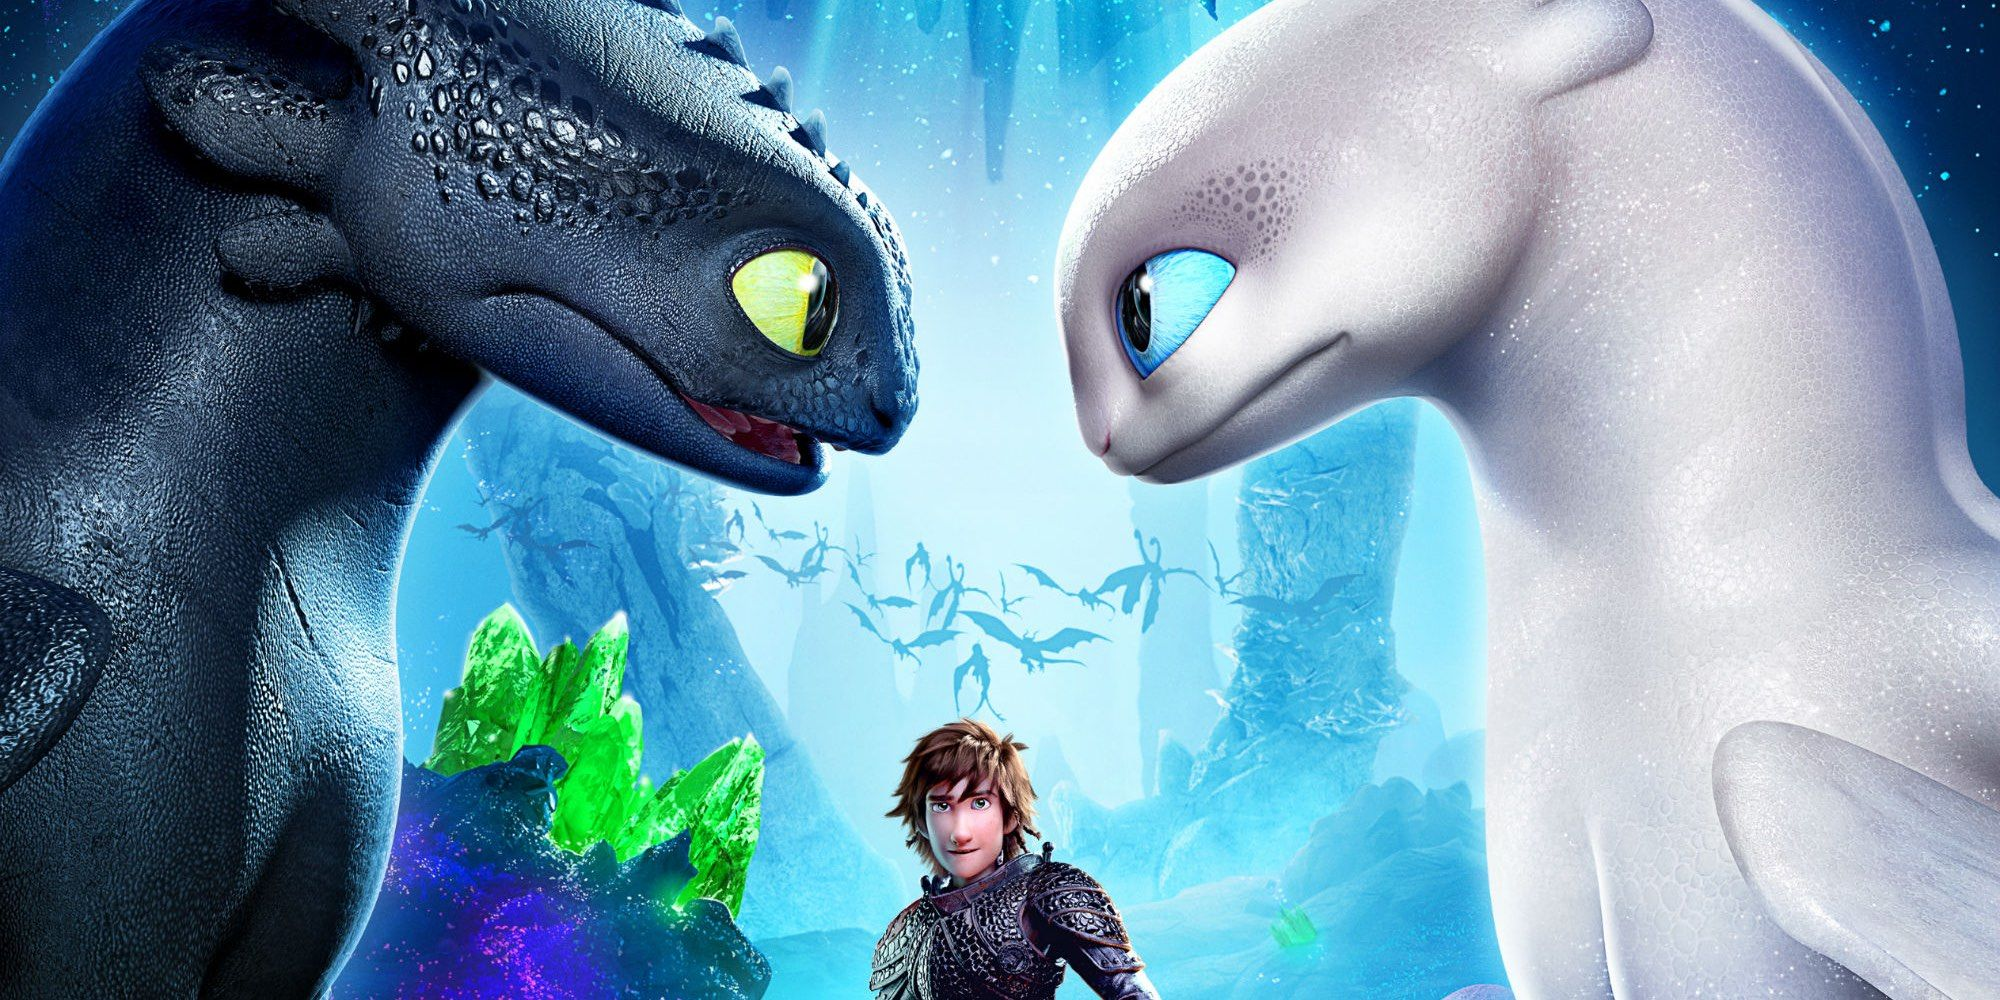 How to Train Your Dragon 3 Poster Teases A Brand New World - photo#31